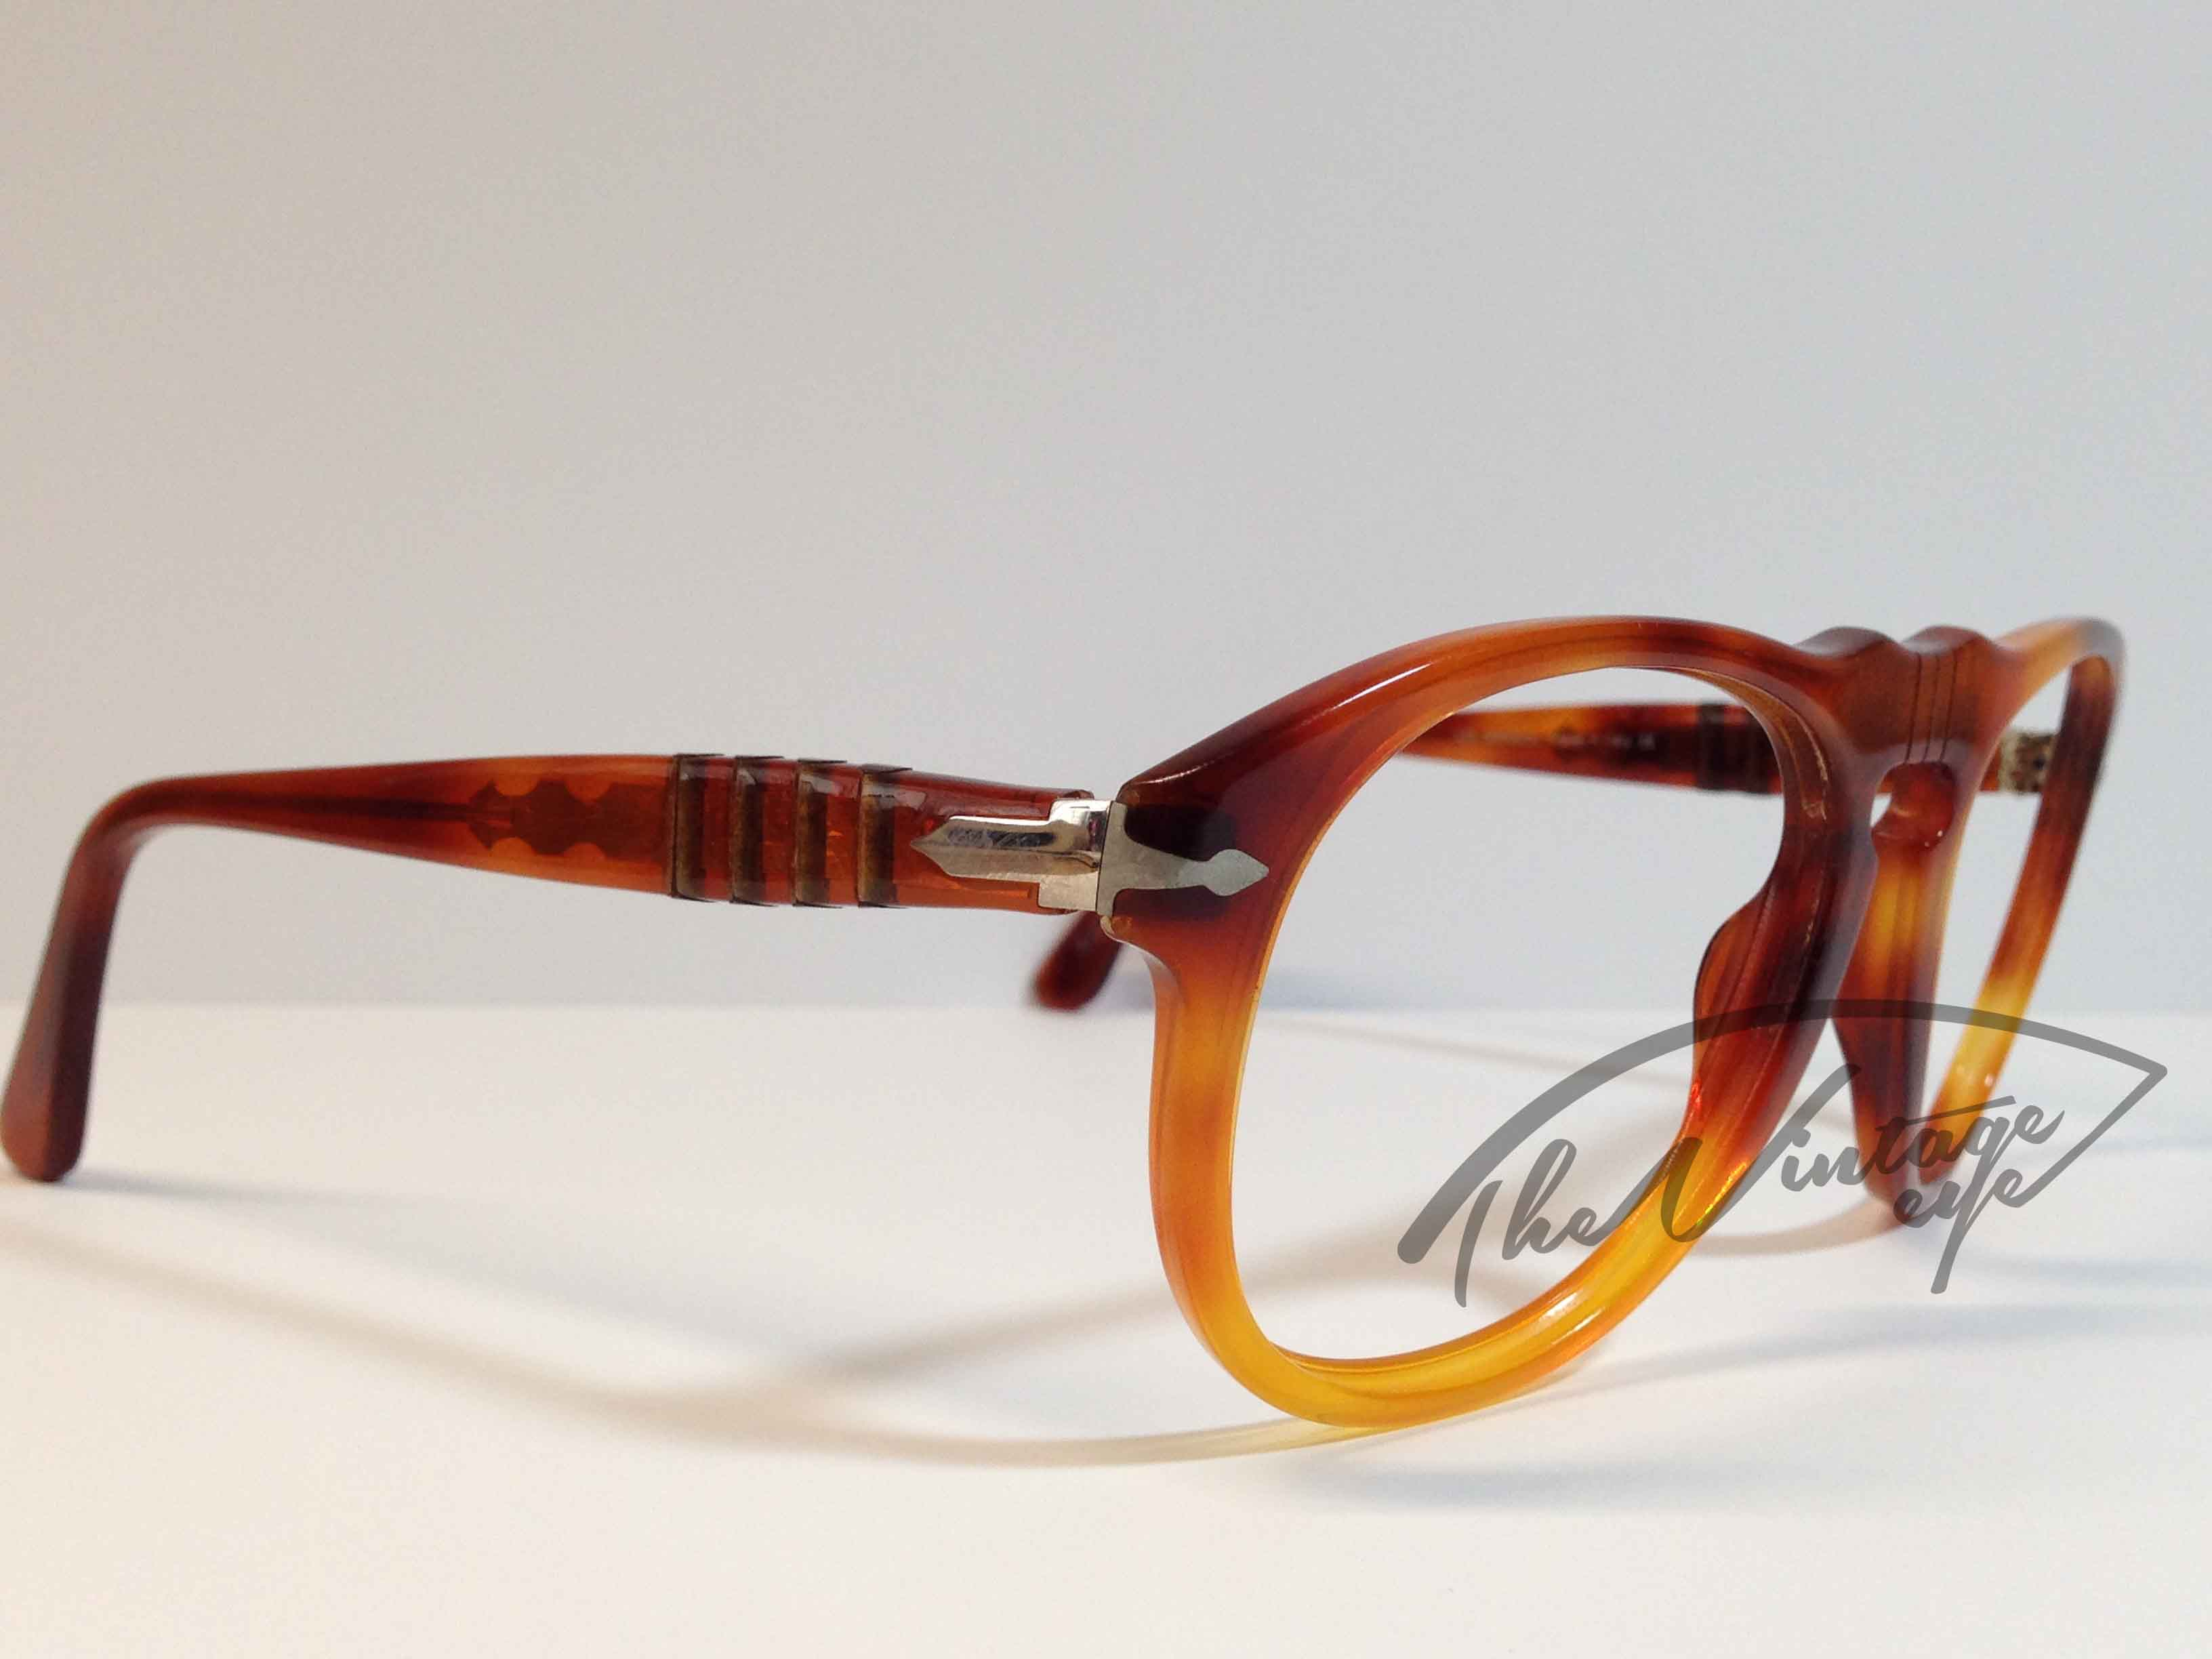 Persol 649 (Small size) - The Vintage Eye